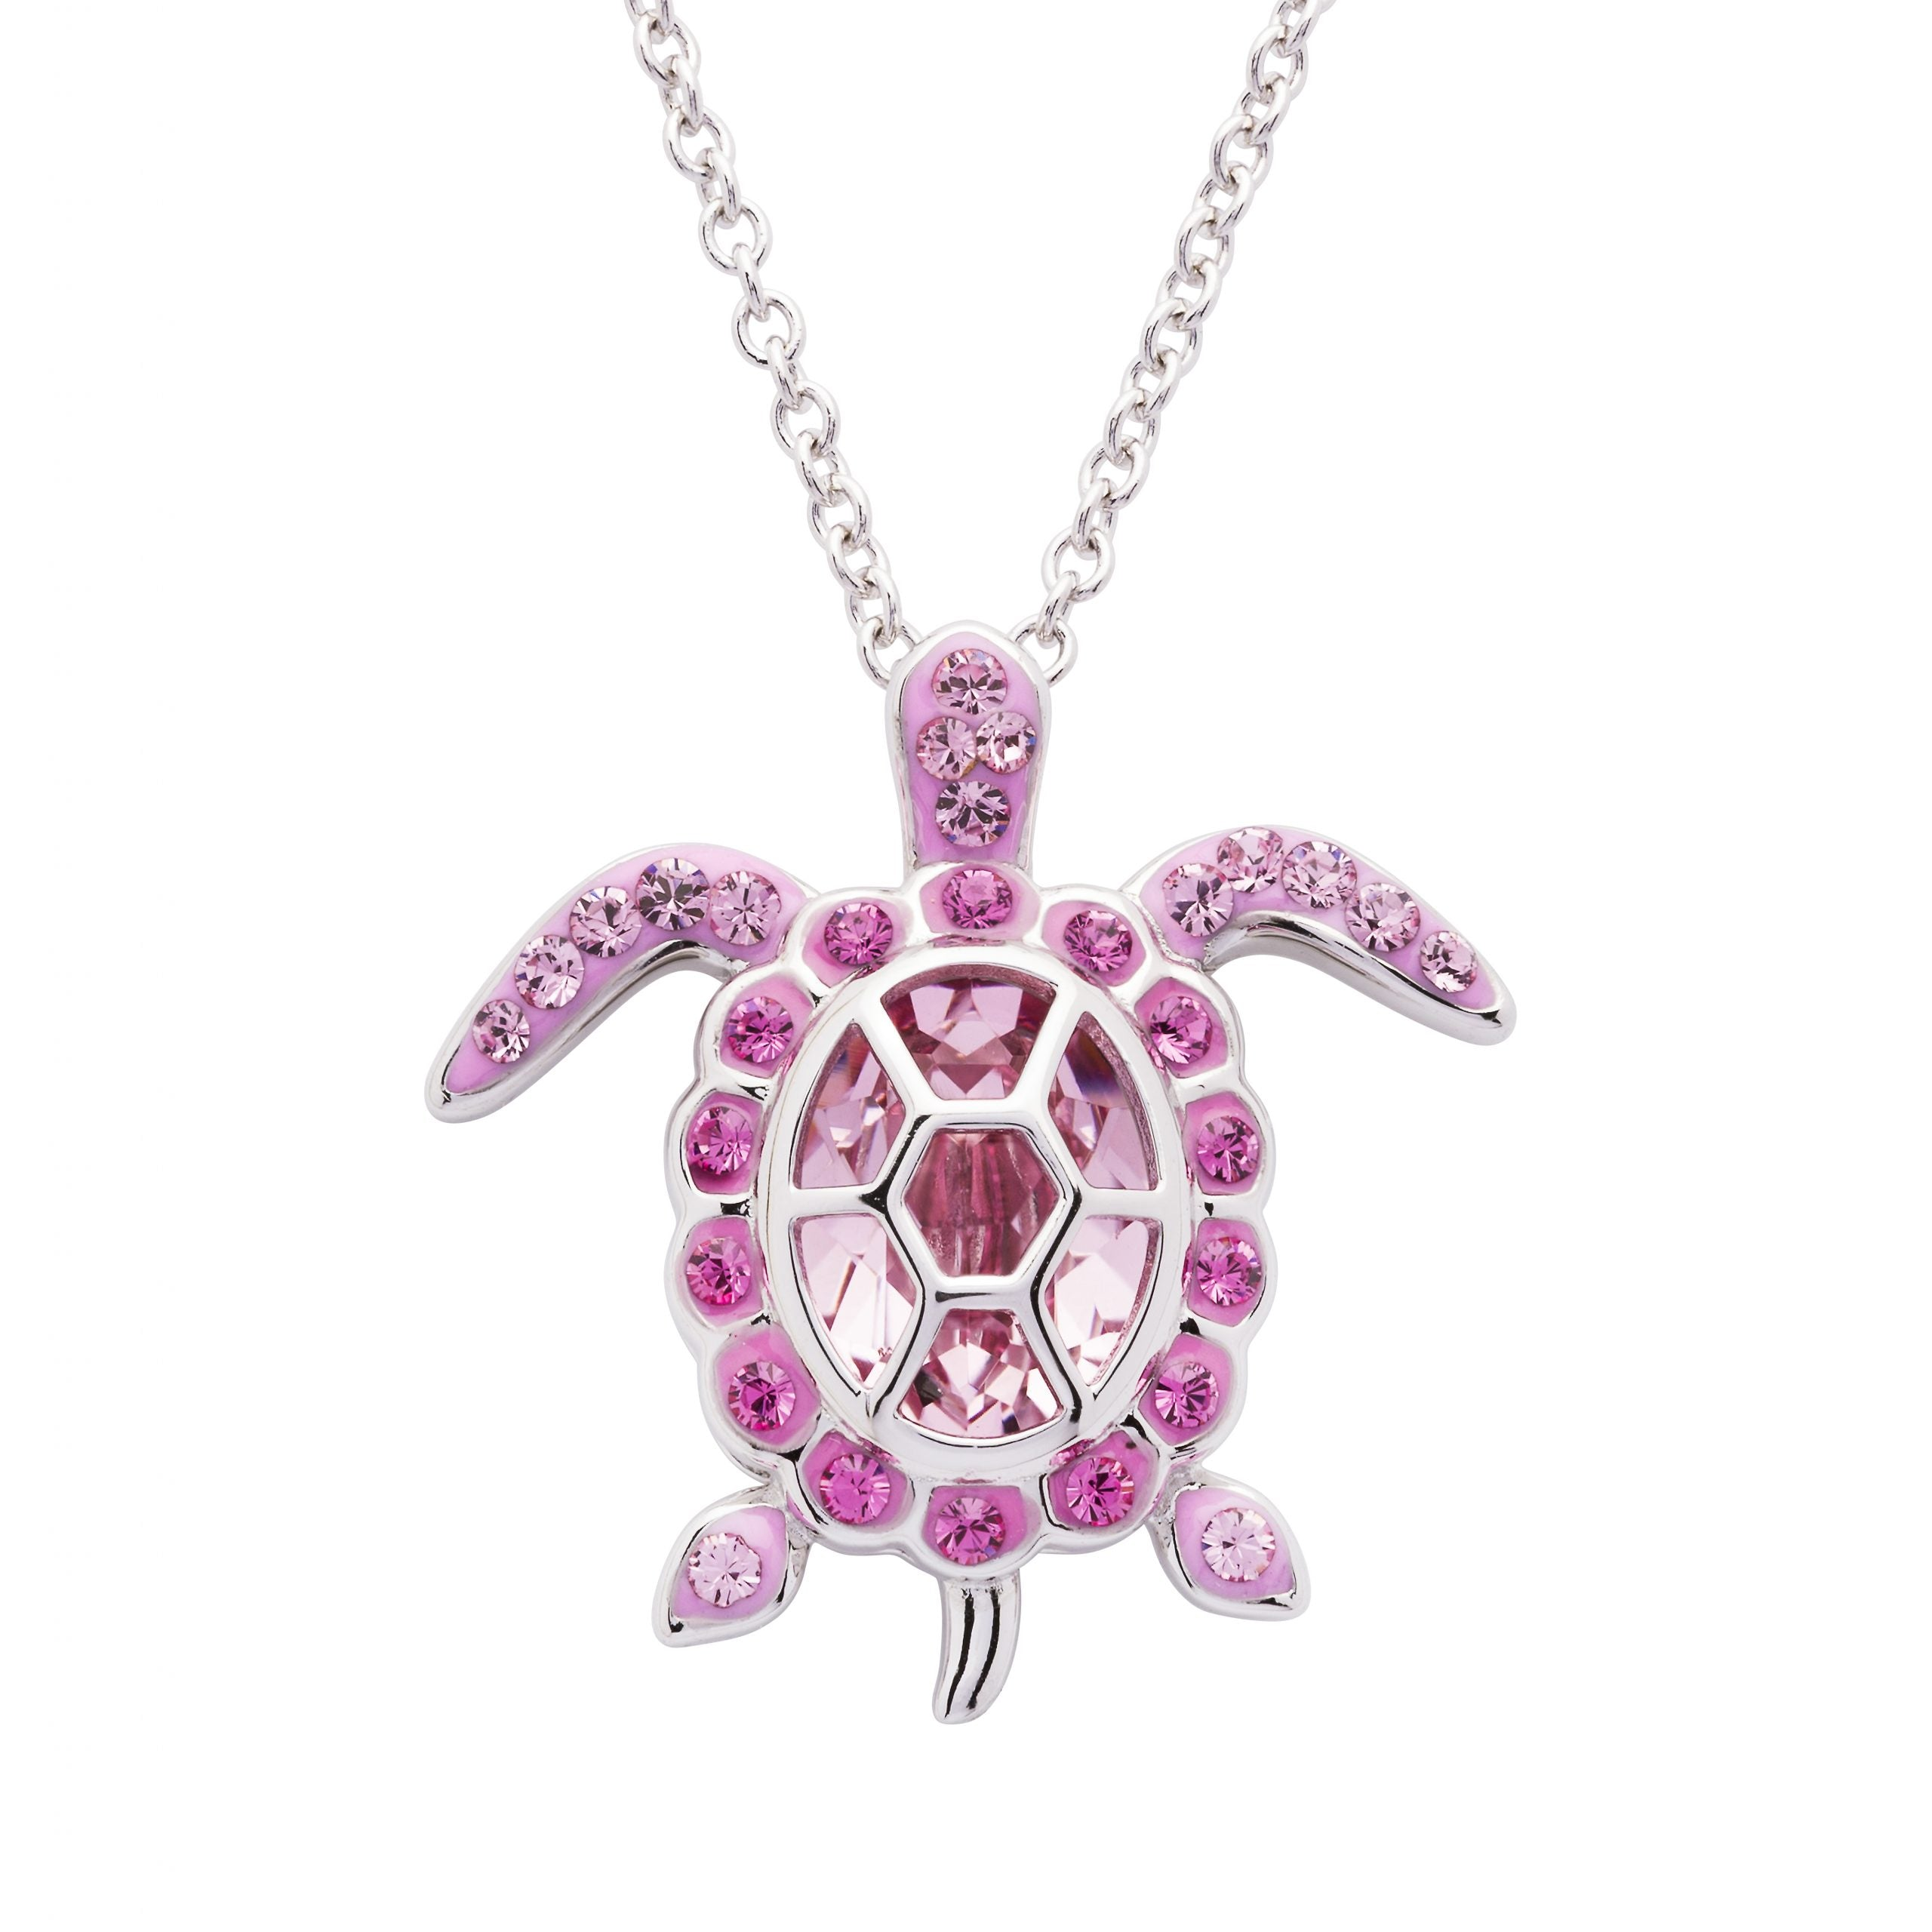 October Turtle Birthstone Pendant with Swarovski Crystals